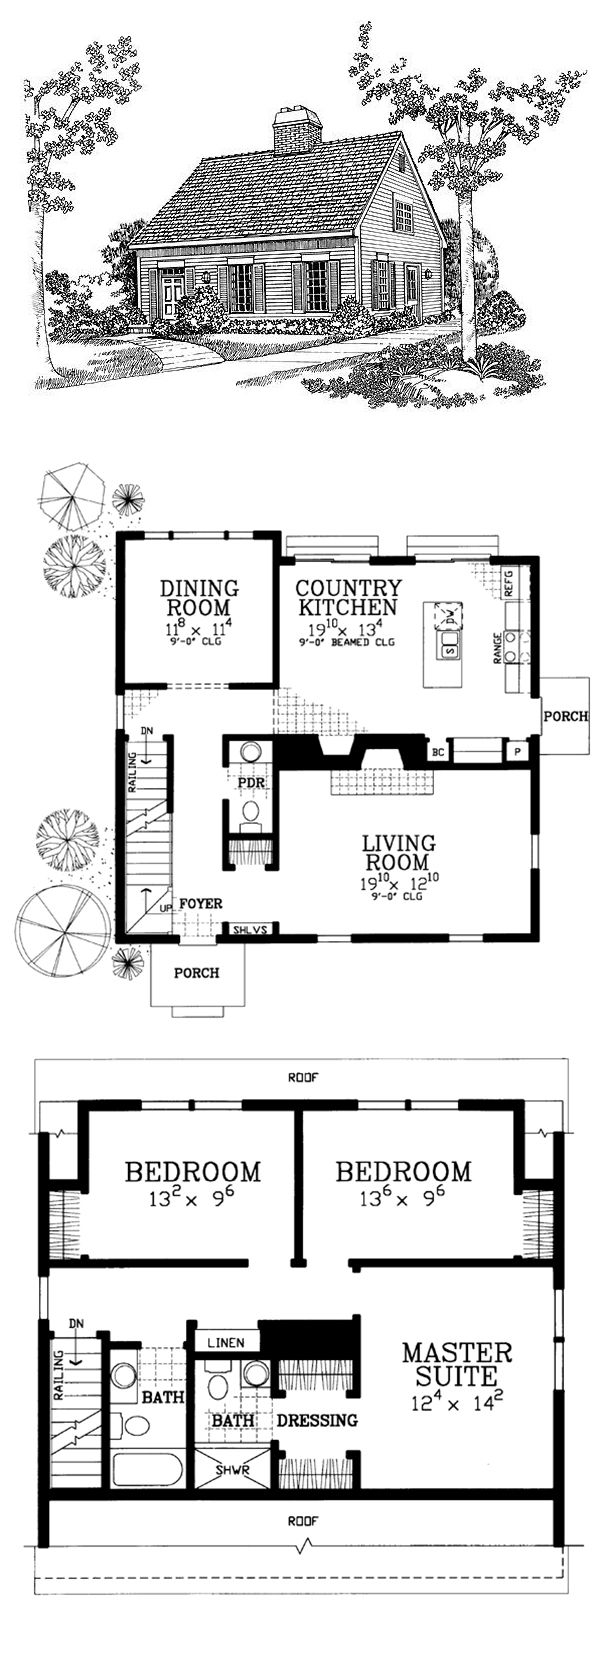 Small Modern Cape Cod House Plan Cathedral Ceiling 1 Car: Total Living Area: 1782 Sq Ft, 3